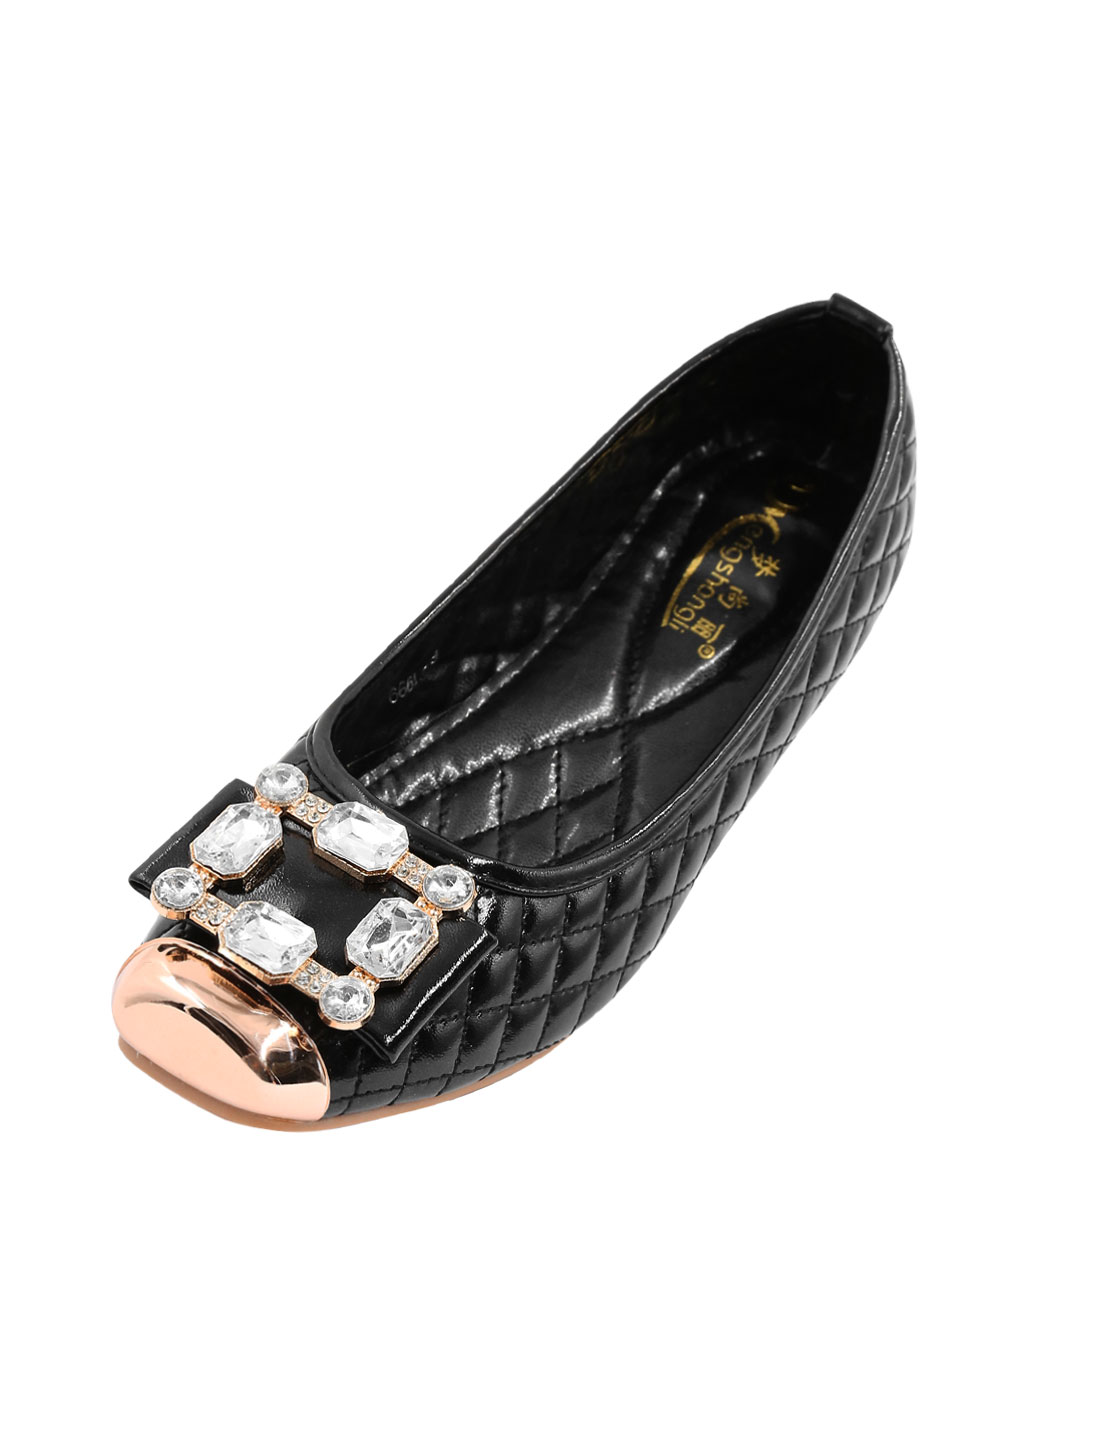 Women Square Toe Rhinestone Embellished Quilted Flats Black US 8